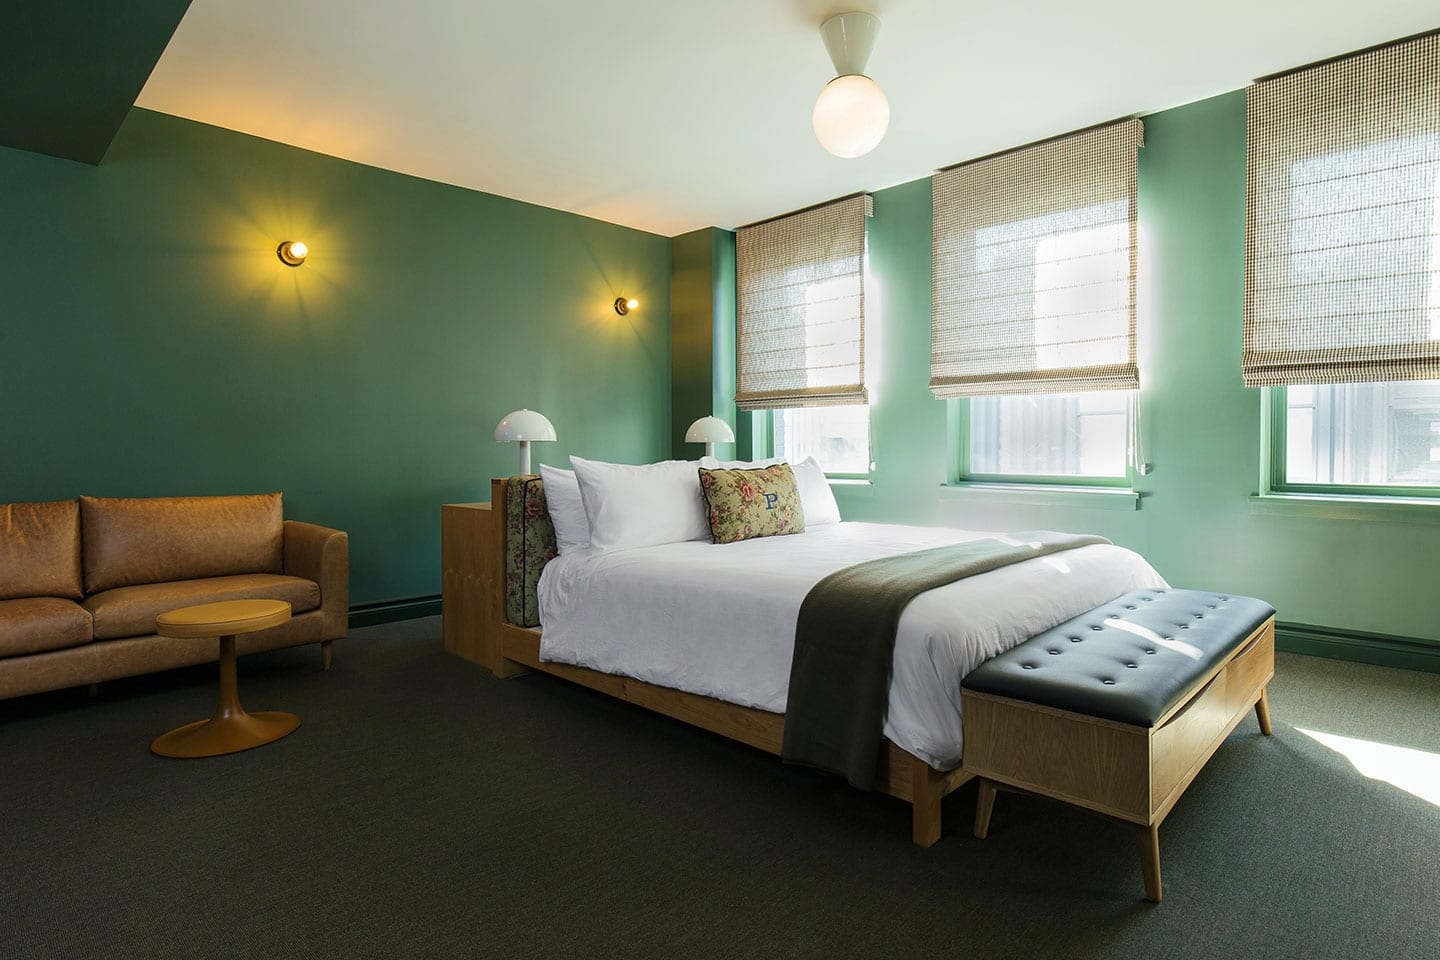 22pali seattle rooms